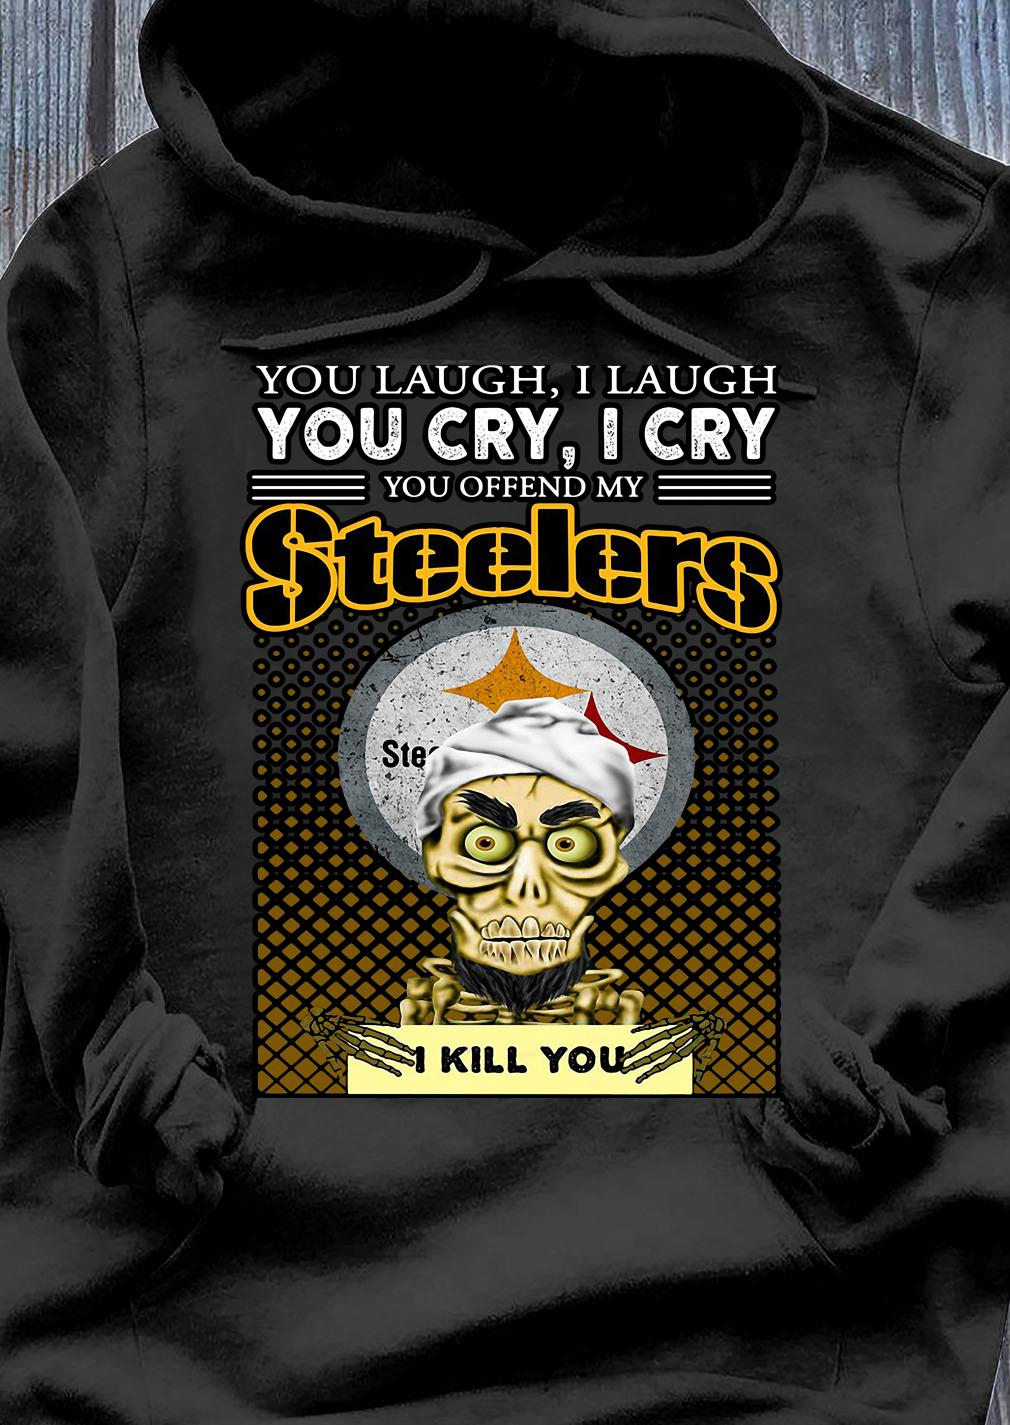 Jeff Dunham Achmed The Dead Terrorist You Laugh I Laugh You Cry I Cry You Offend My Pittsburgh Steelers I Kill You Shirt Hoodie